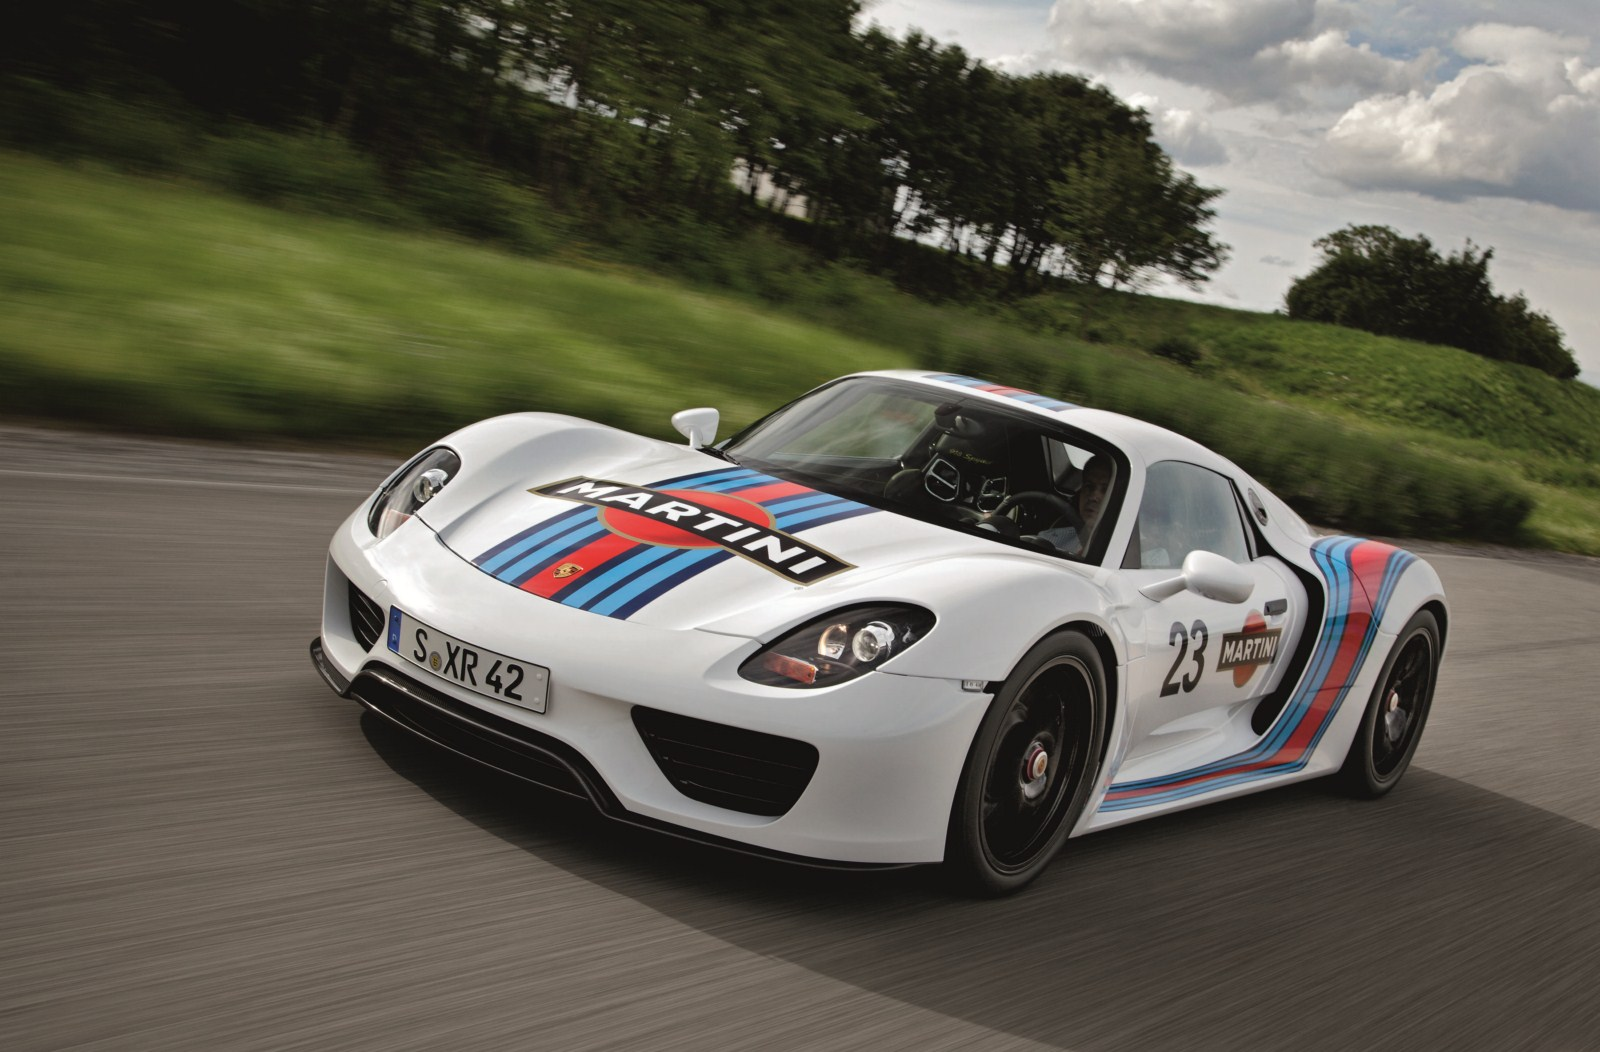 Porsche 918 Spyder Gets Legendary Martini Racing Team Brand Livery